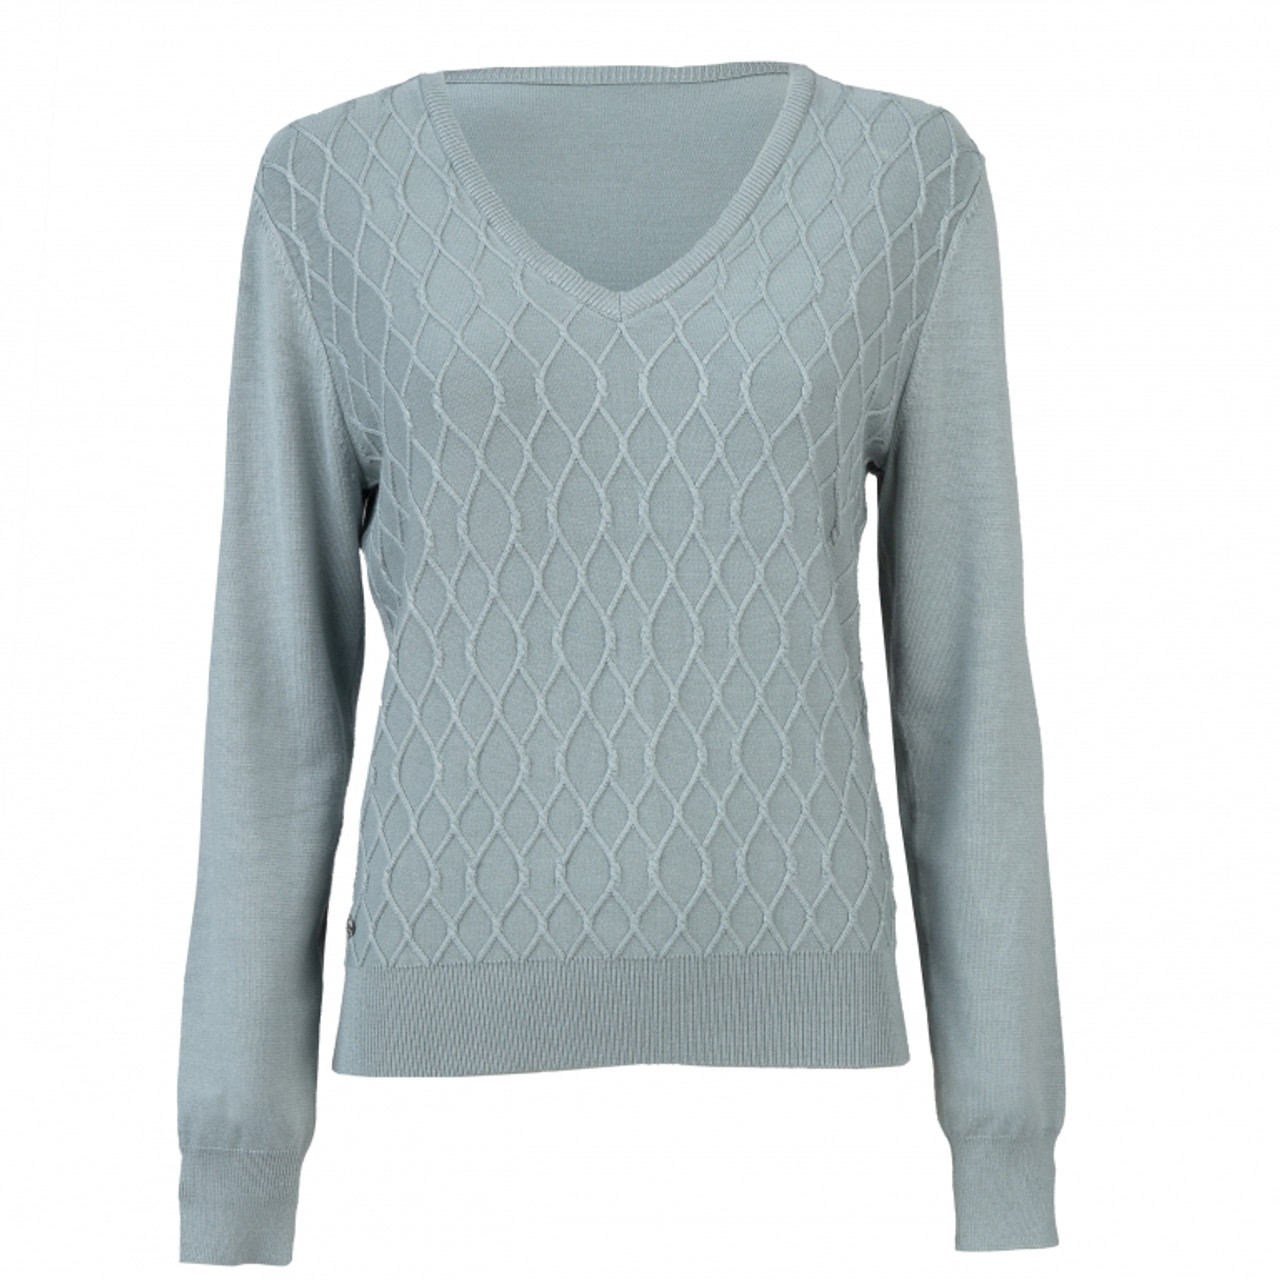 Daily Sports Amie Cable Knit Pullover Mist Golf4her